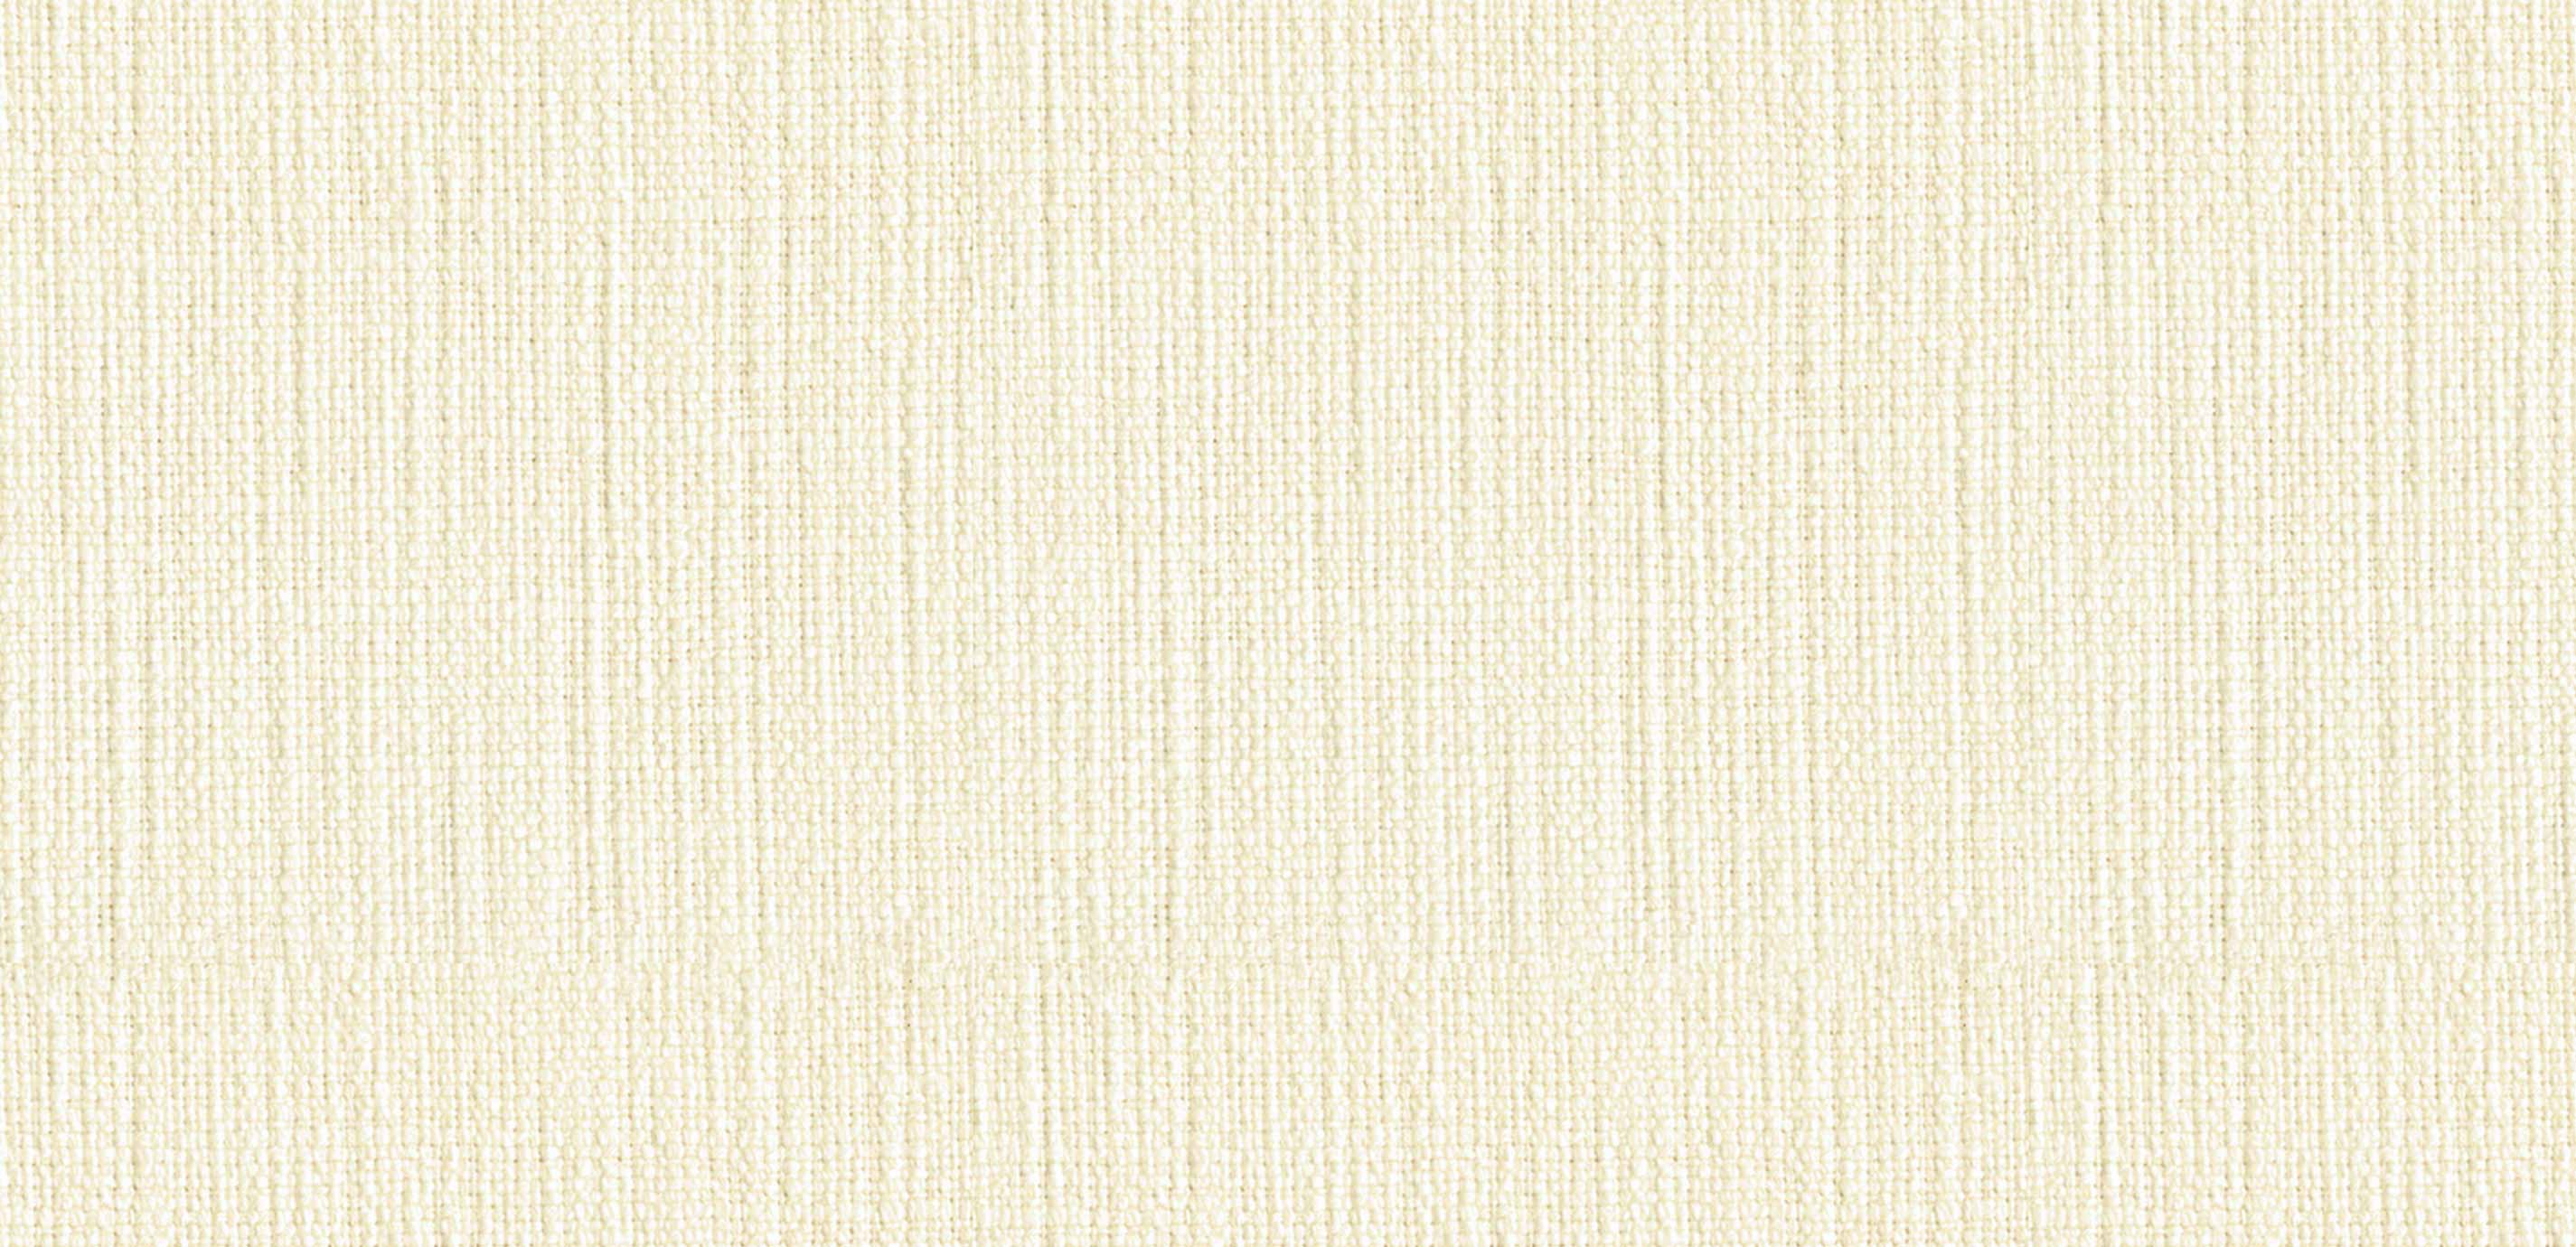 Niles Natural Fabric Fabrics Ethan Allen